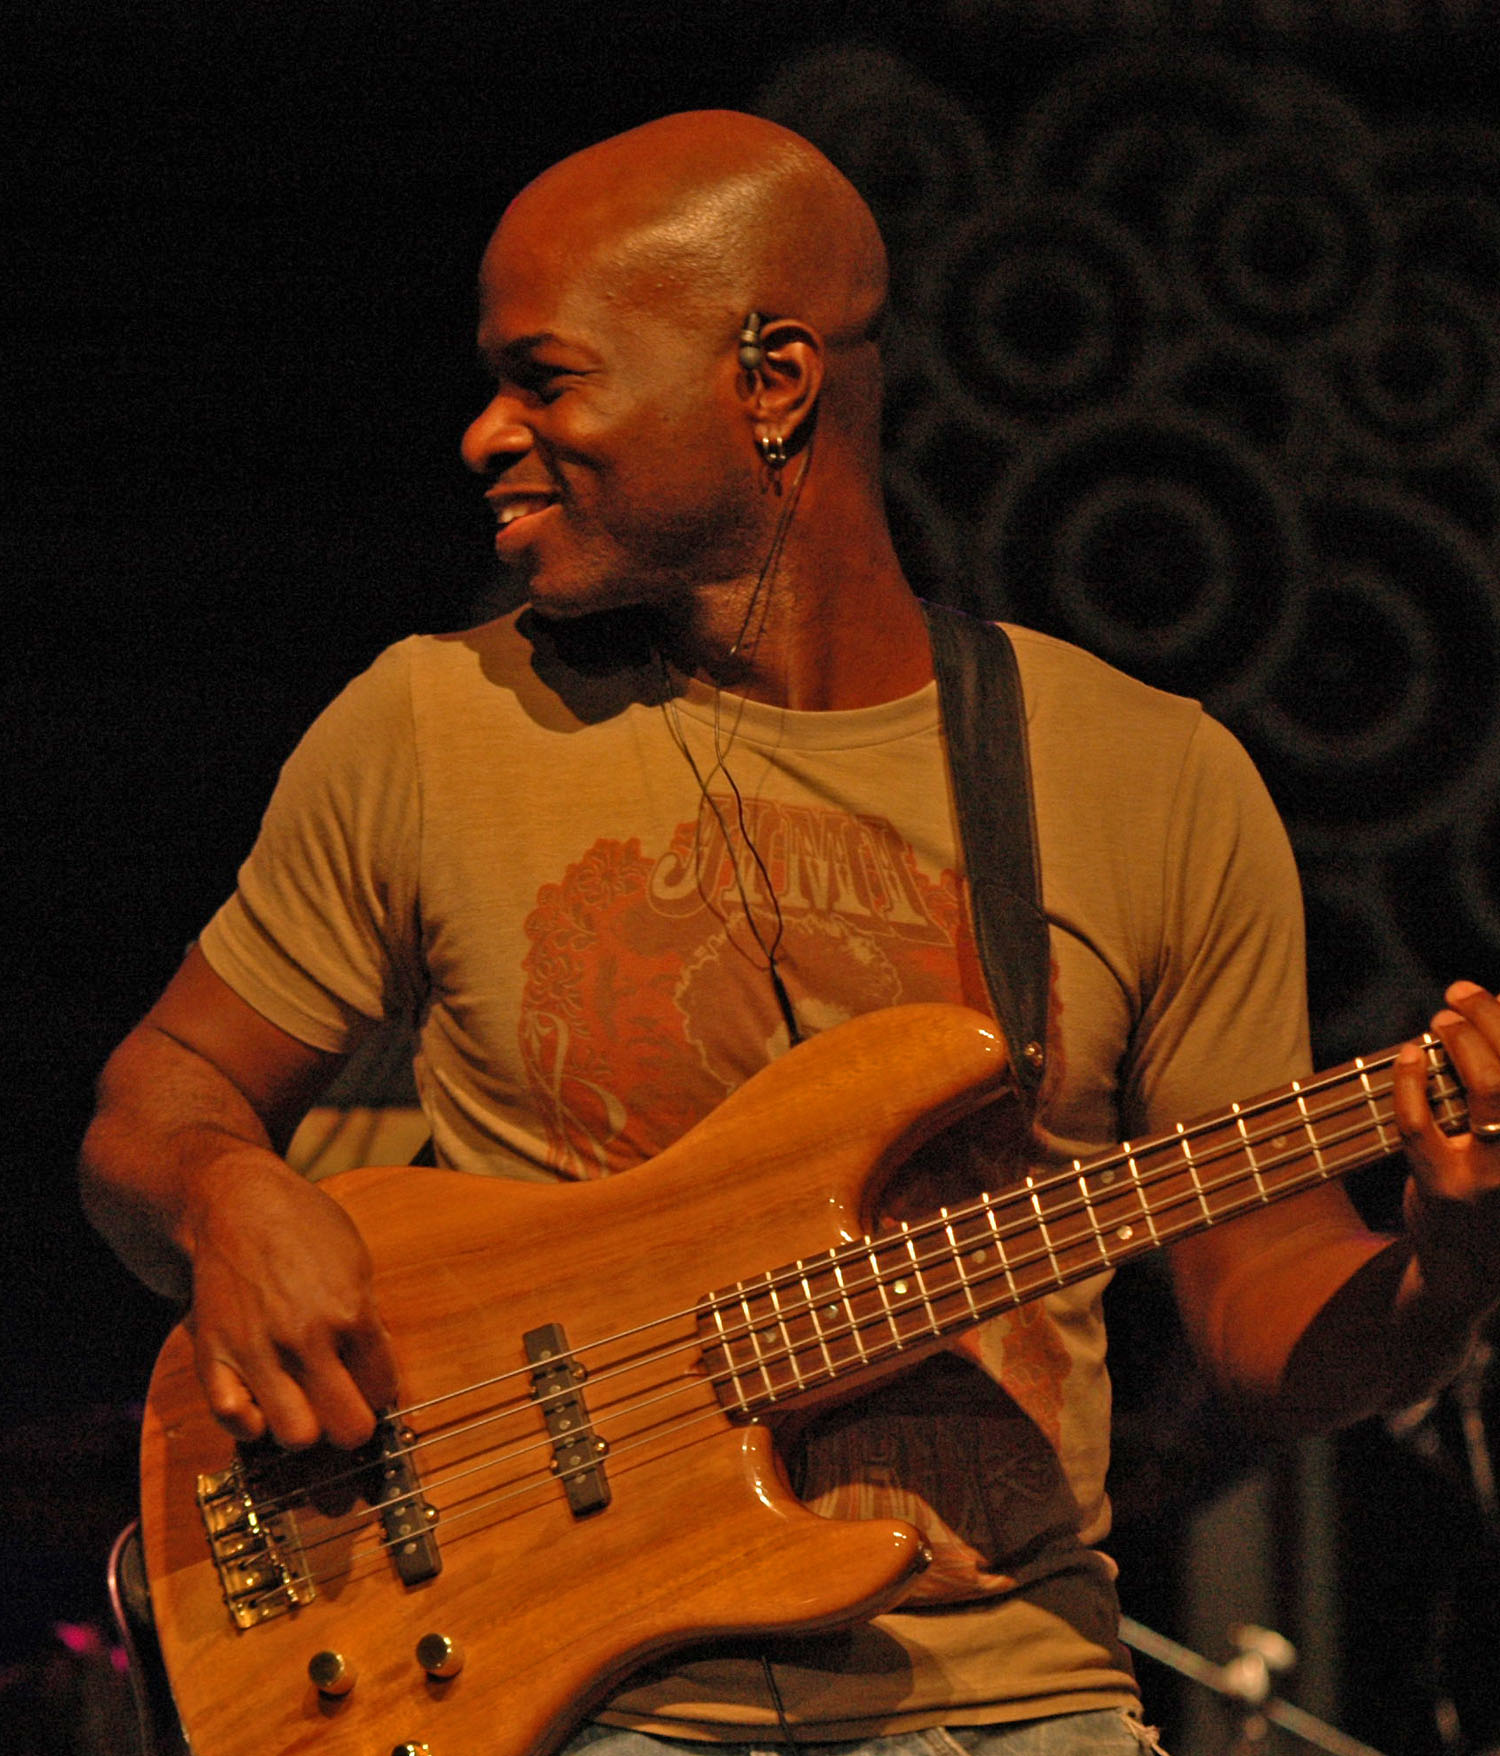 Richie Goods, Performing with Lenny White's Anomaly at the 2010 New Universe Music Festival